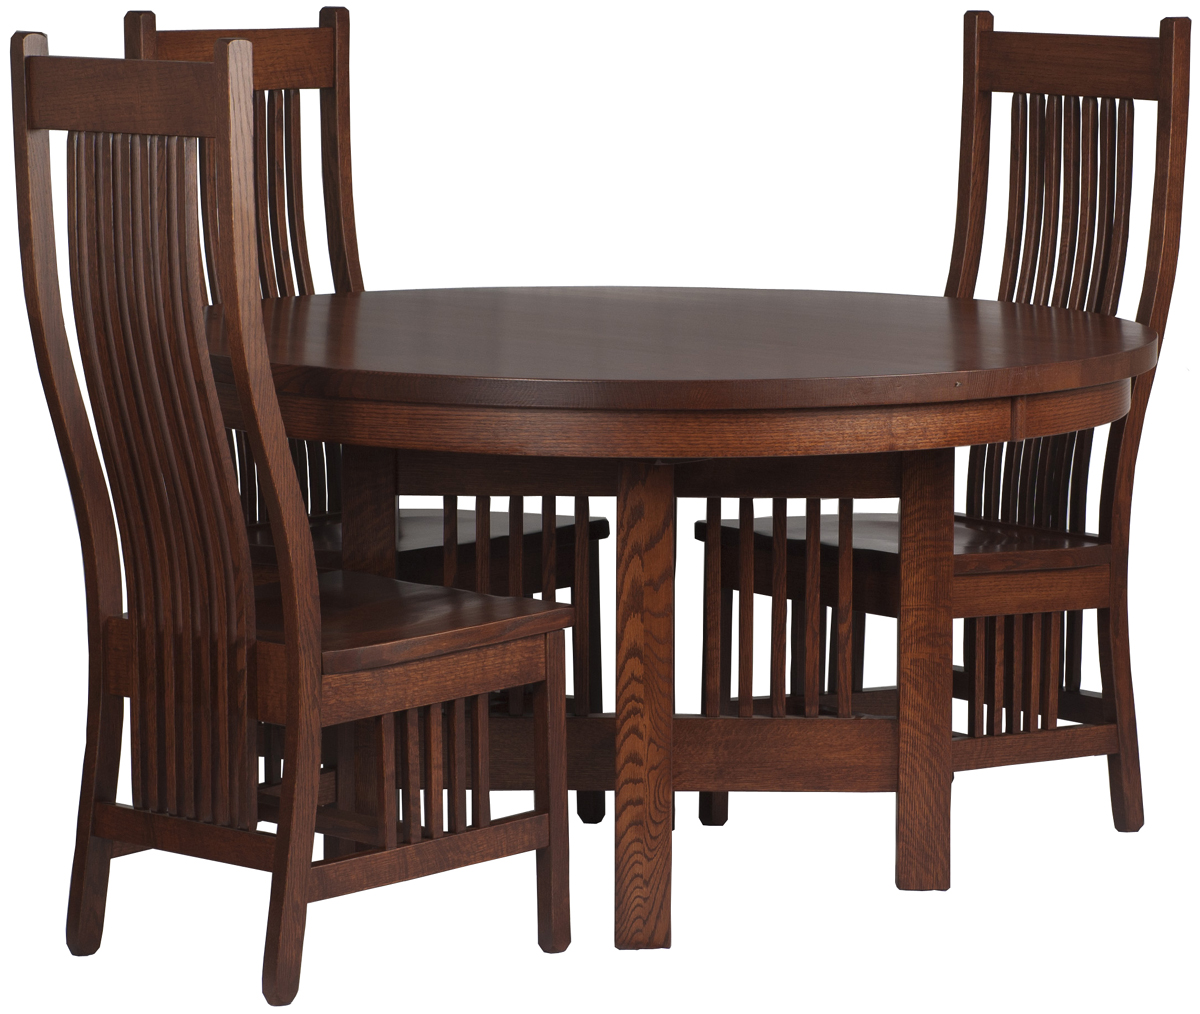 Vail dining chair dining room chair in the vail style for Chair 4 cliffs vail